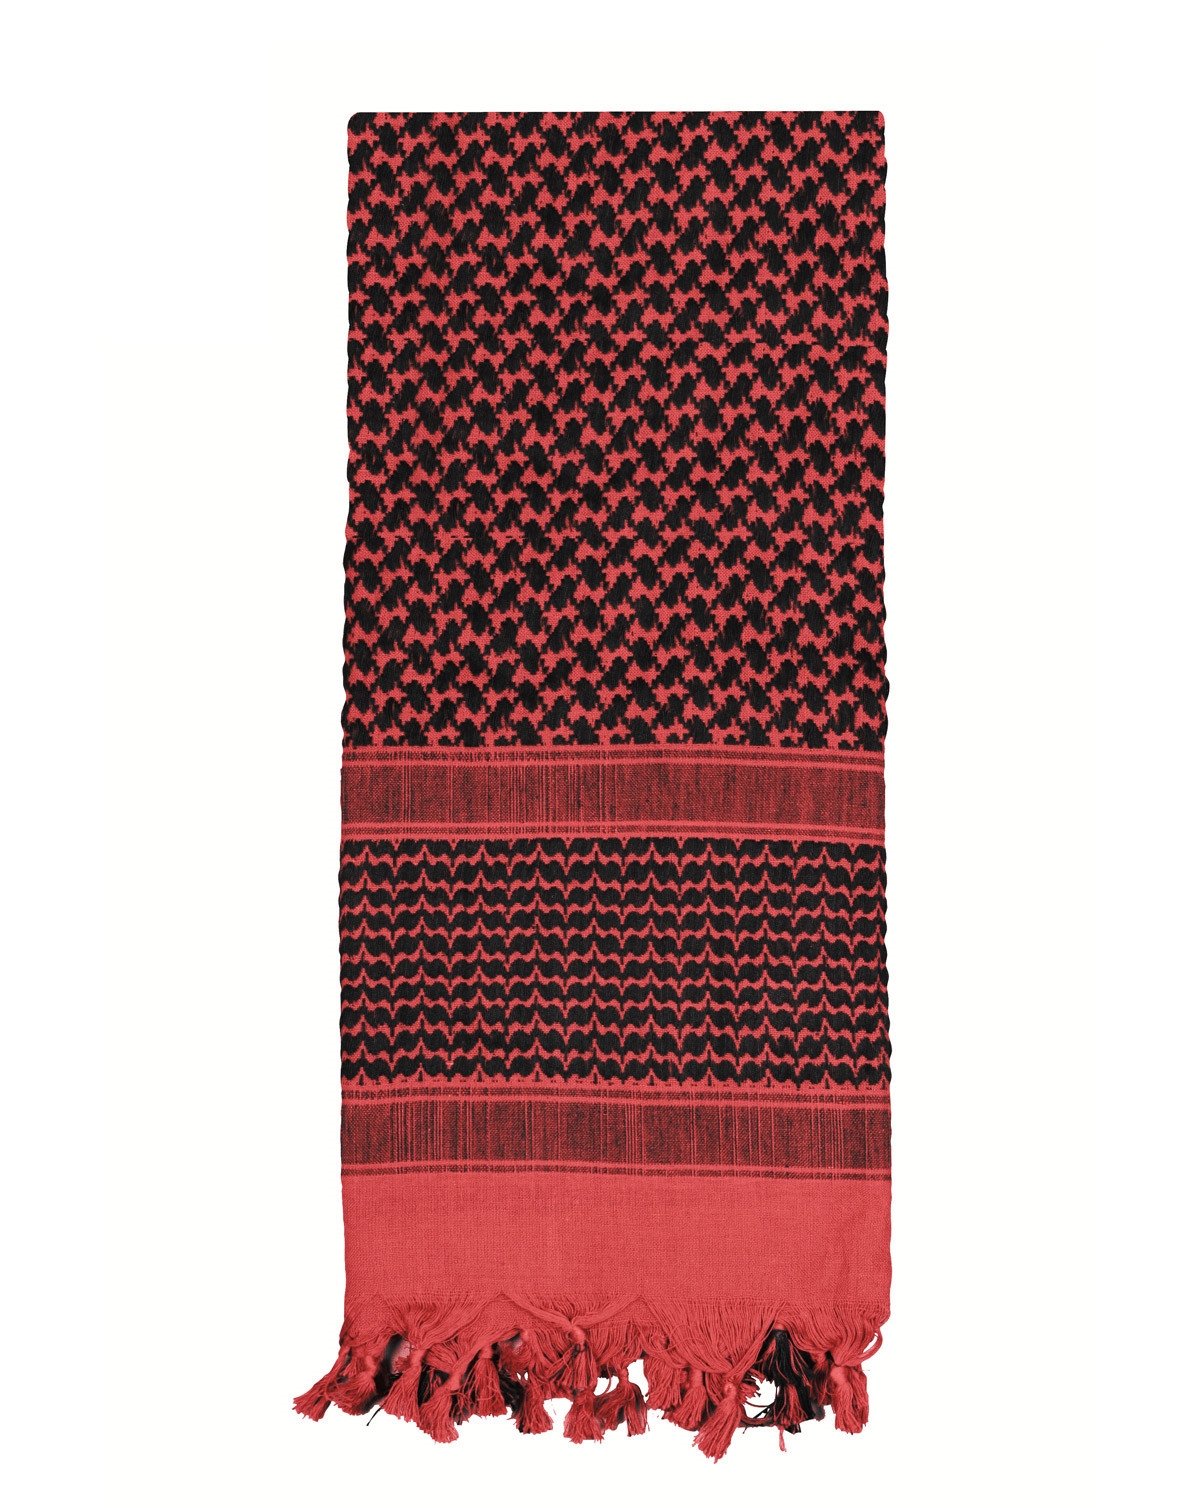 Image of   Rothco Deluxe Partisan Tørklæde (Rød / Sort, One Size)